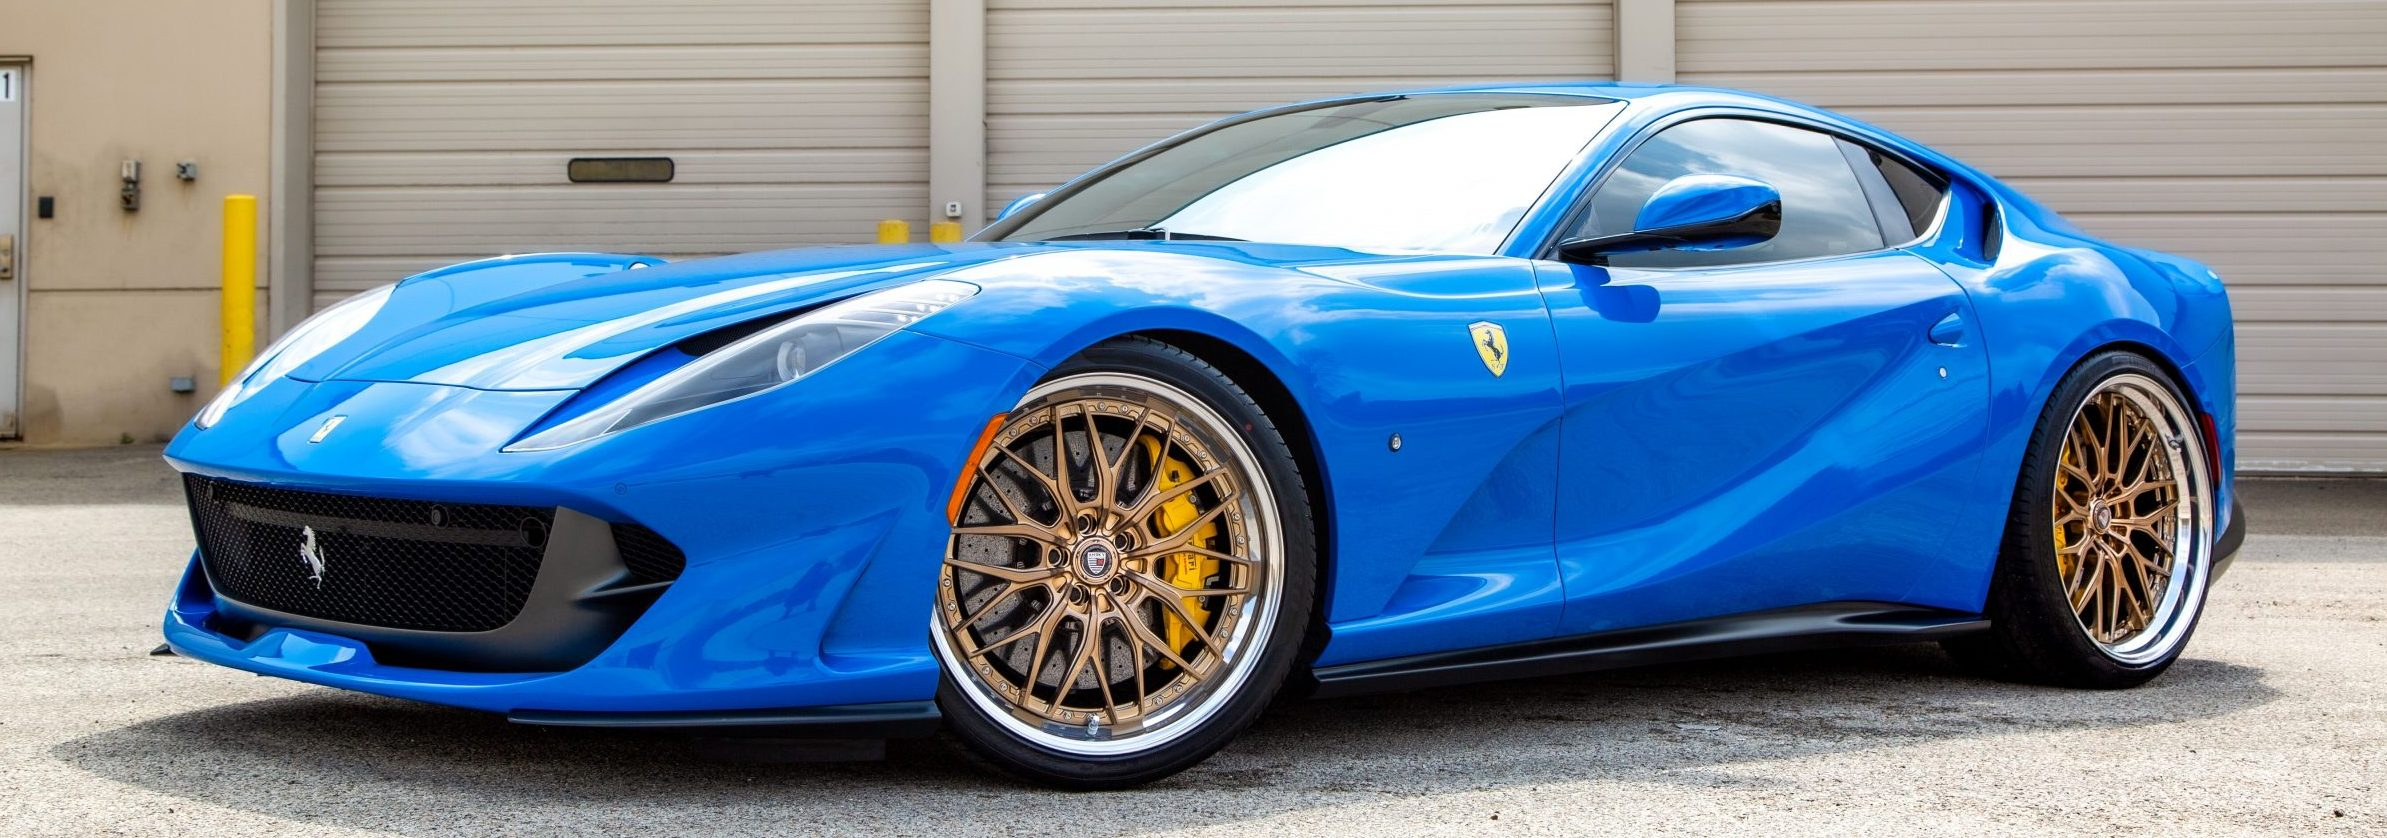 Ferrari 812 Superfast in Azzurro Dino on Anrky Wheels RetroSeries RS1 Polished Champagne with a polished lip and carbon fiber center caps - Rogue Wheels Distribution